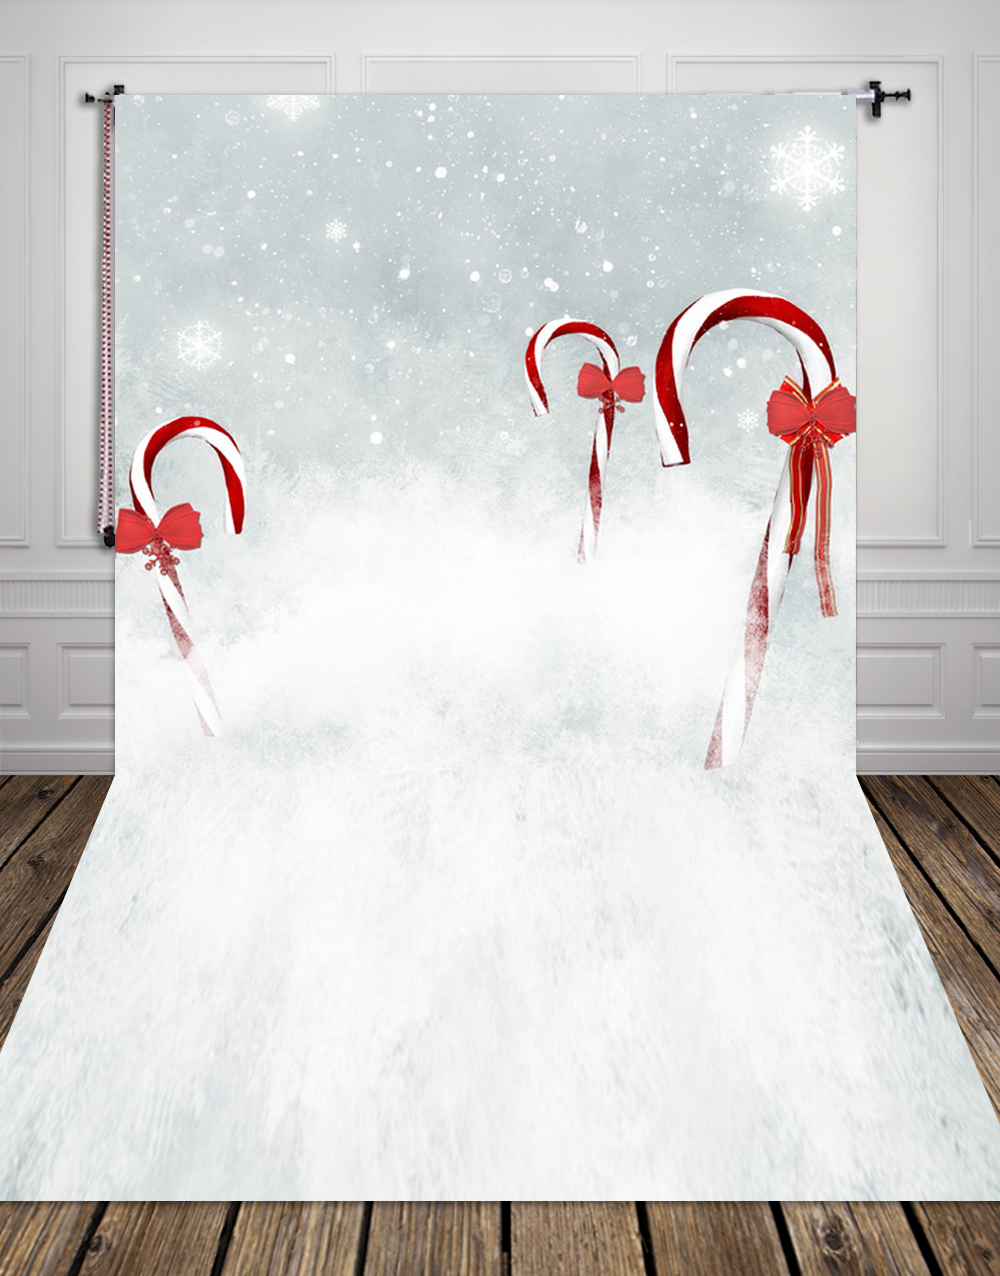 Christmas Photography Backdrops Thin Art Fabric Newborn Pet Baby Props Tree Fireplace Snow Gift Backgrounds XT-2569 kate winky stage photography background christmas gift snow fireplace light photography backdrops snow spray chimenea navidad